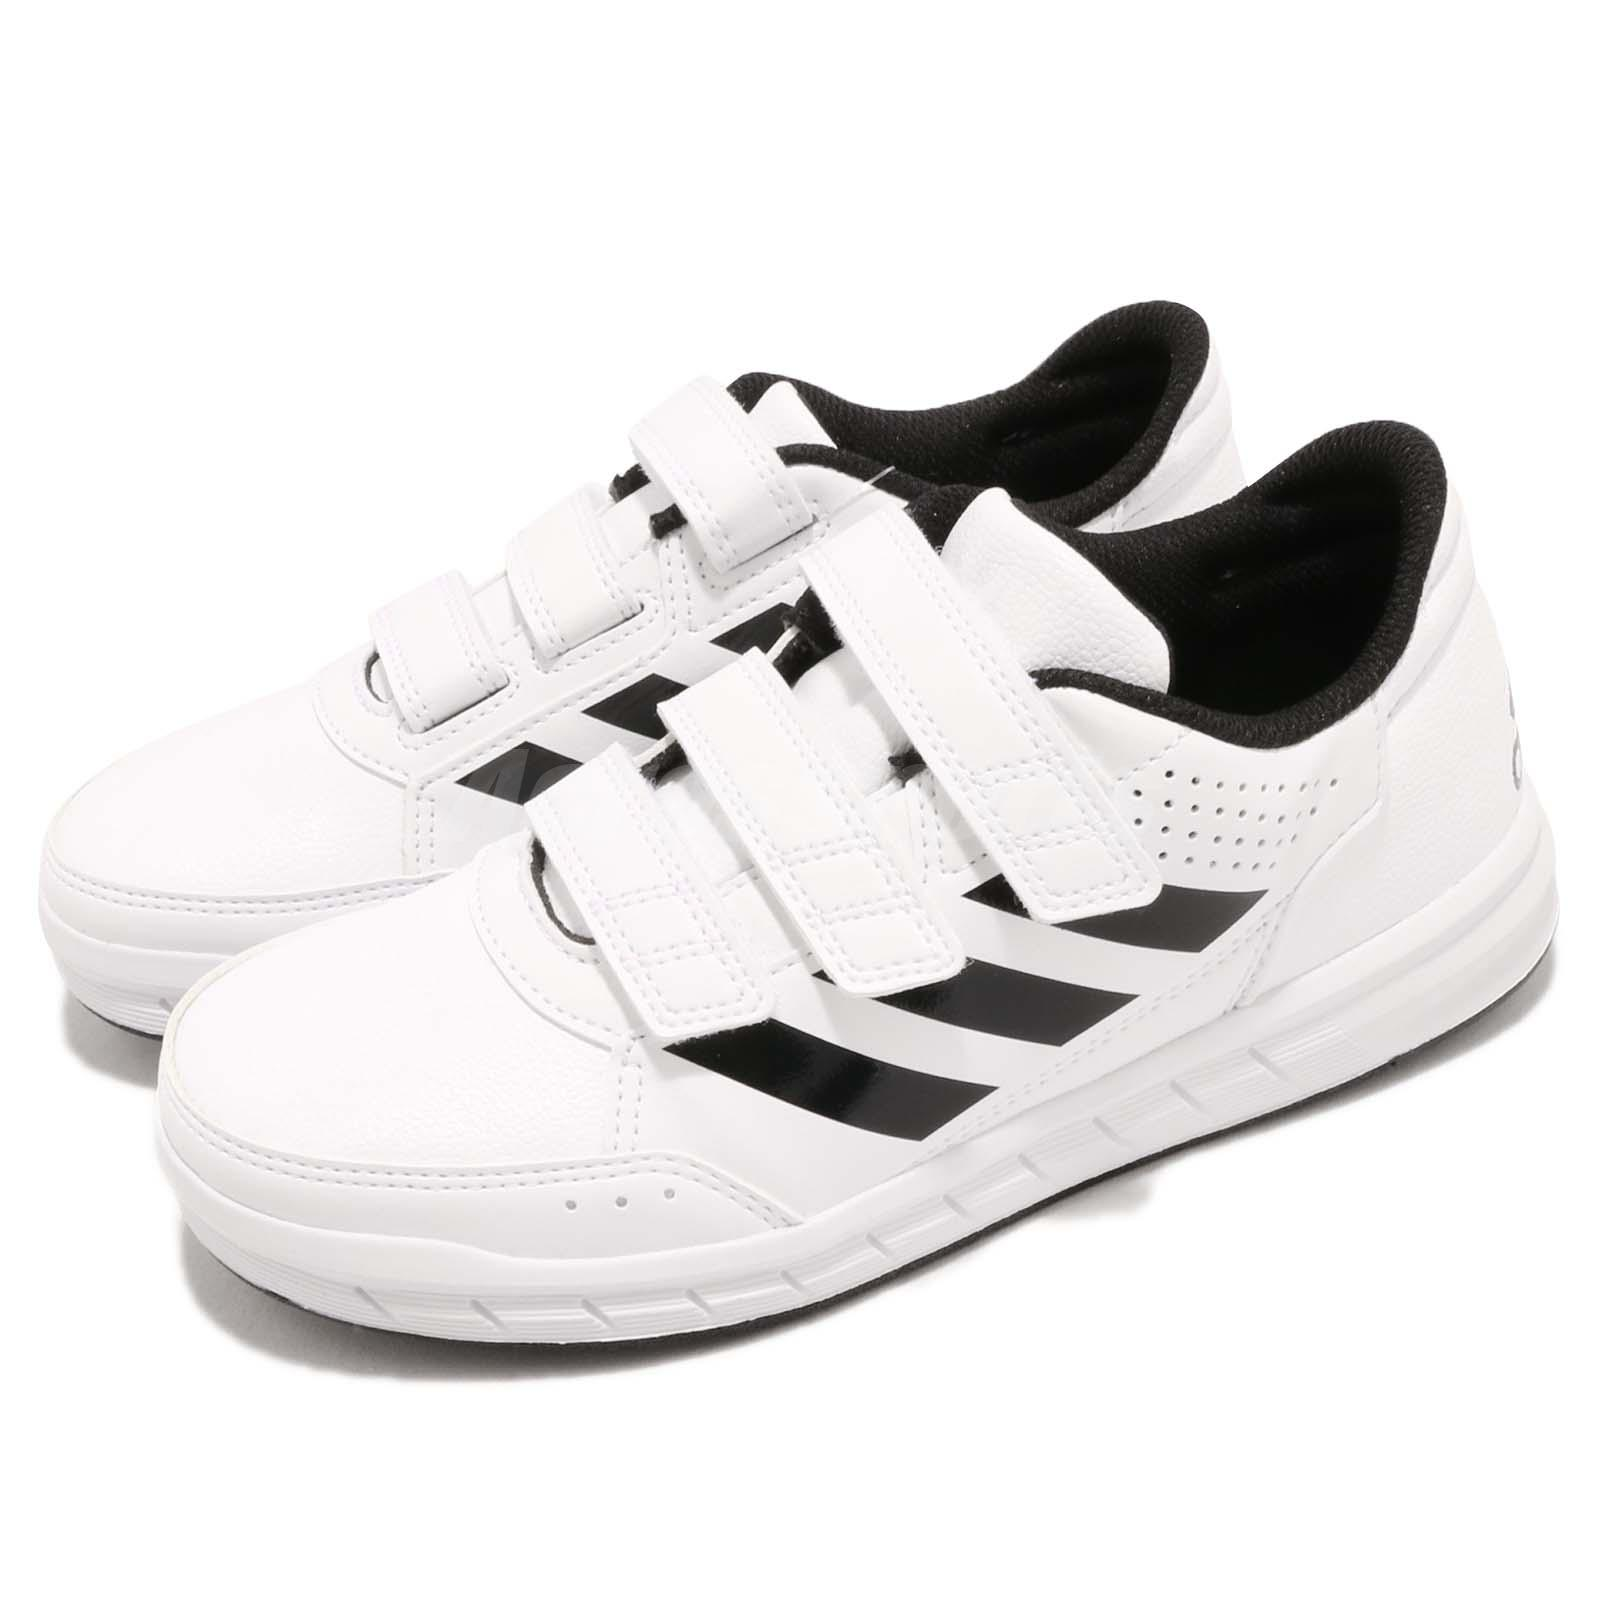 buy online 508be 91317 Details about adidas AltaSport CF K White Black Strap Kid Junior Youth Shoes  Sneakers BA7458